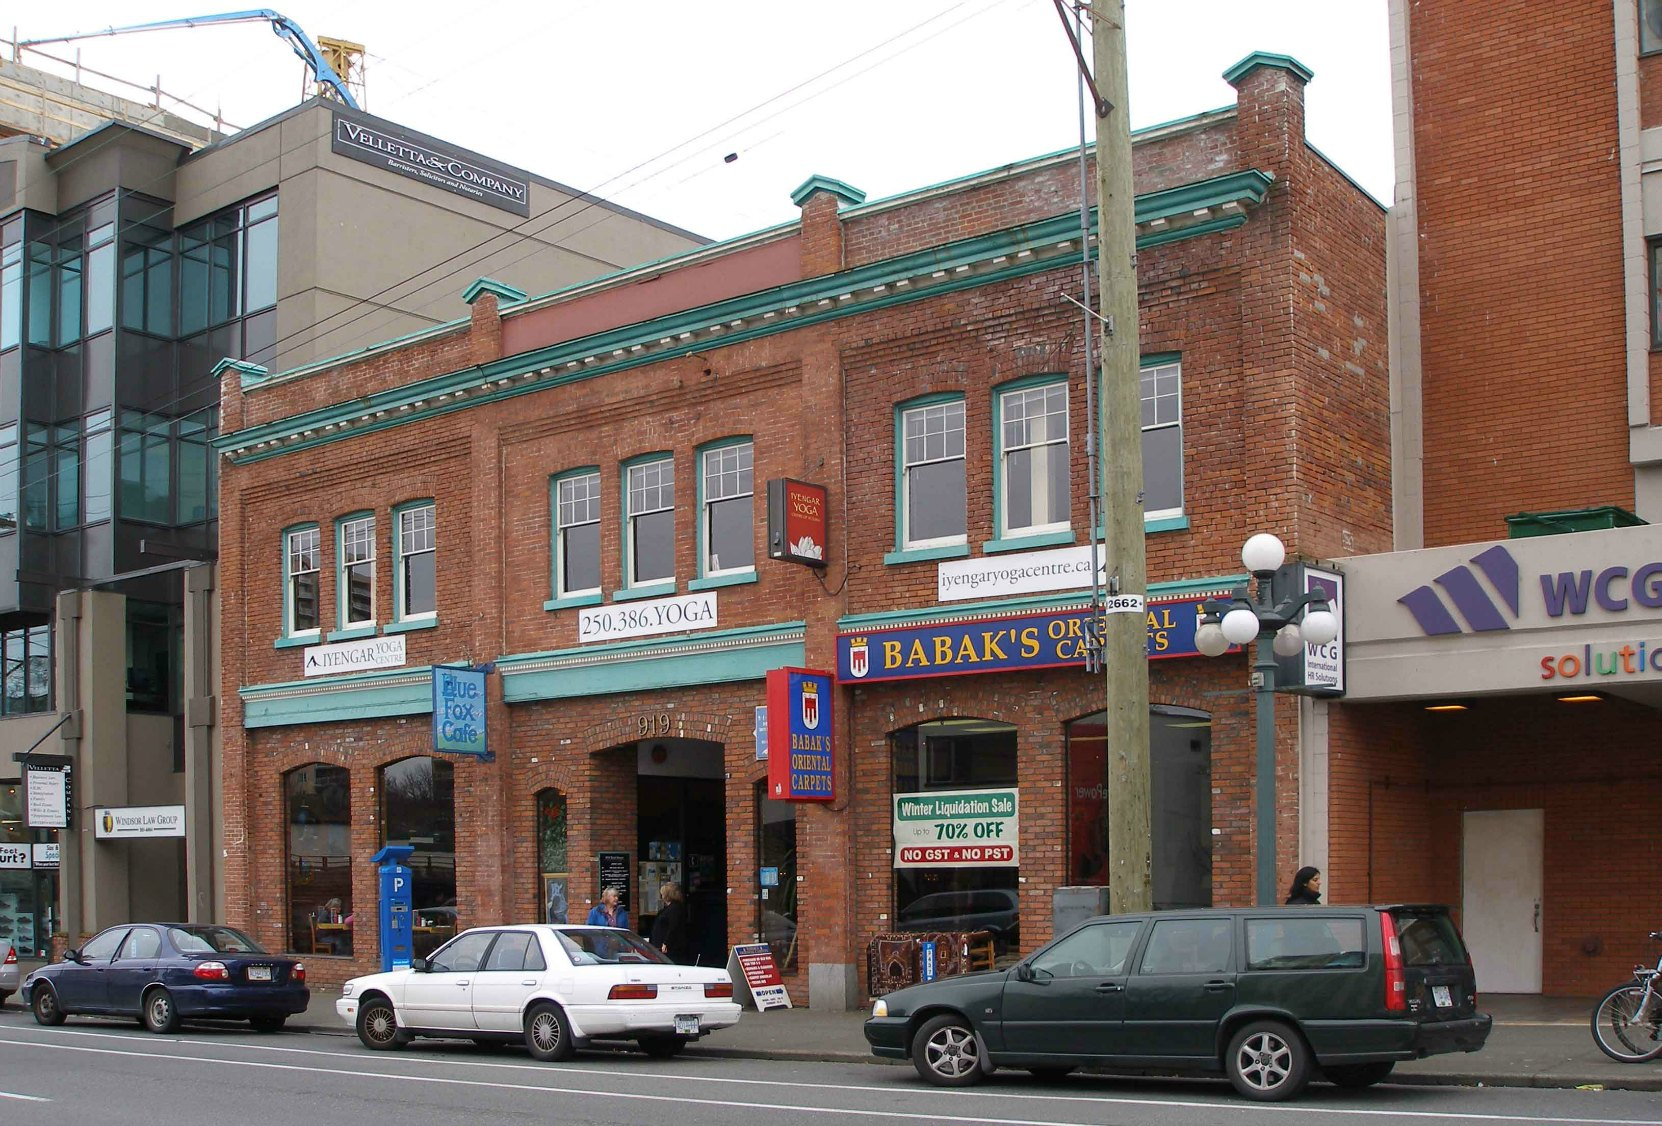 Catterall Building, 919 Fort Street in downtown Victoria, built as an investment property by Thomas Catterall. (photo by Temple Lodge No. 33 Historian)